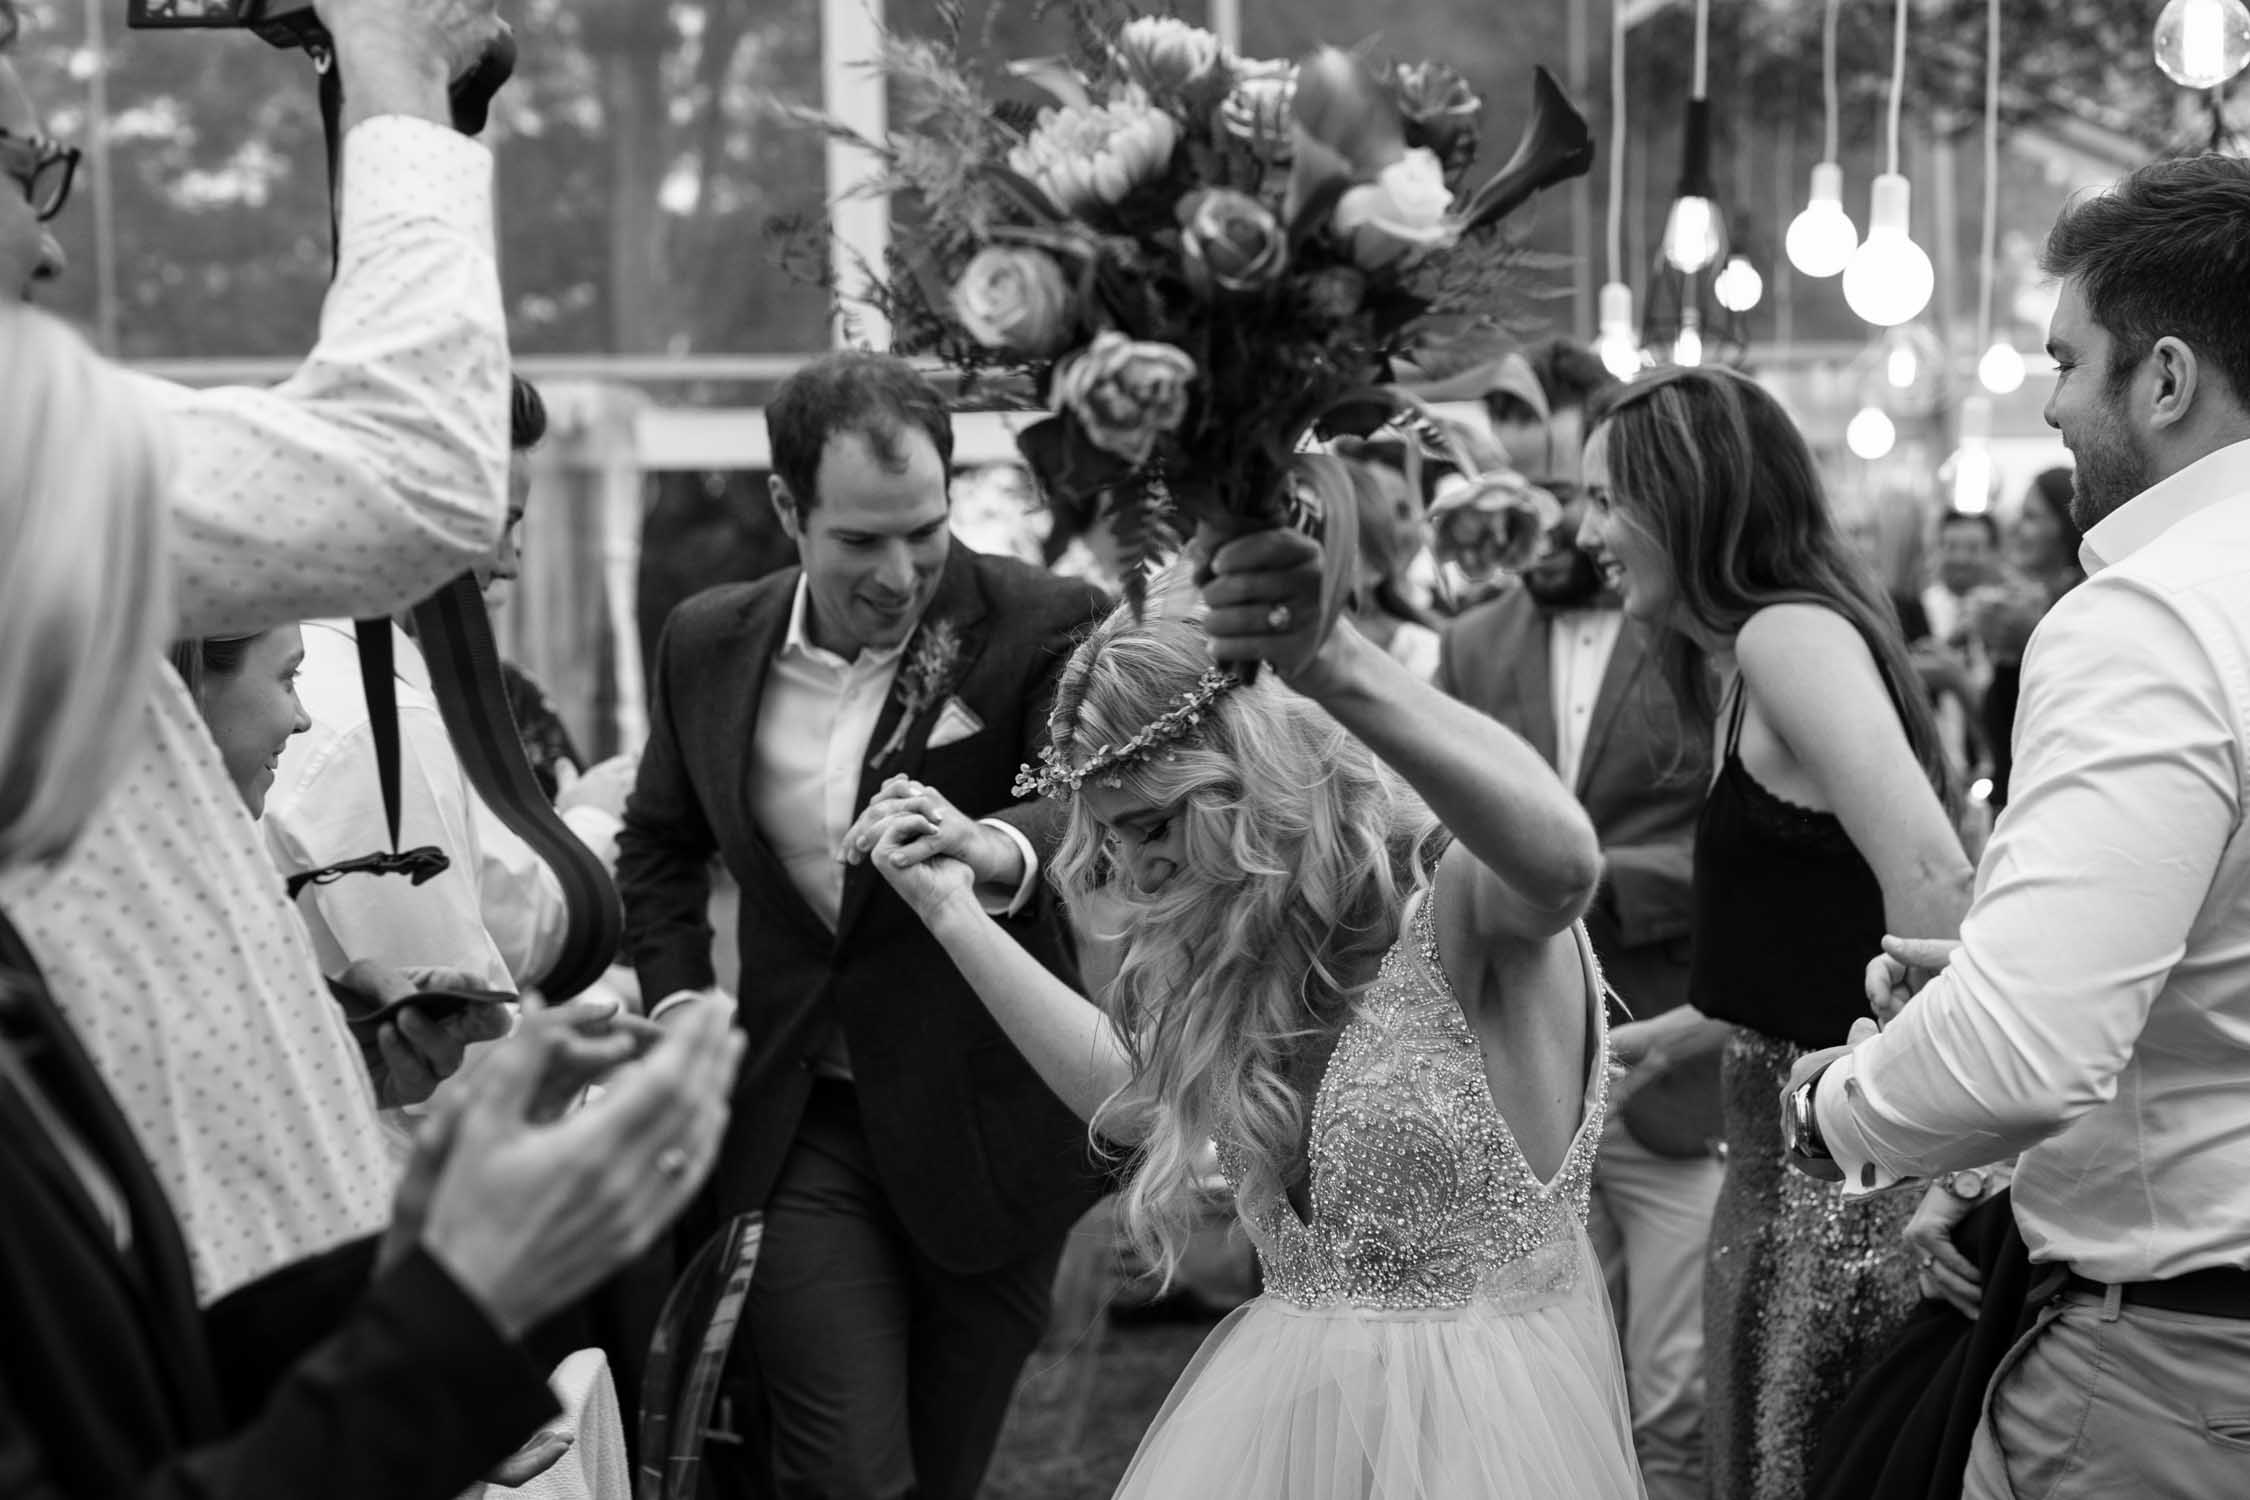 Bride and groom dancing into their wedding reception held in the Natal Midlands near Notthingham Road.